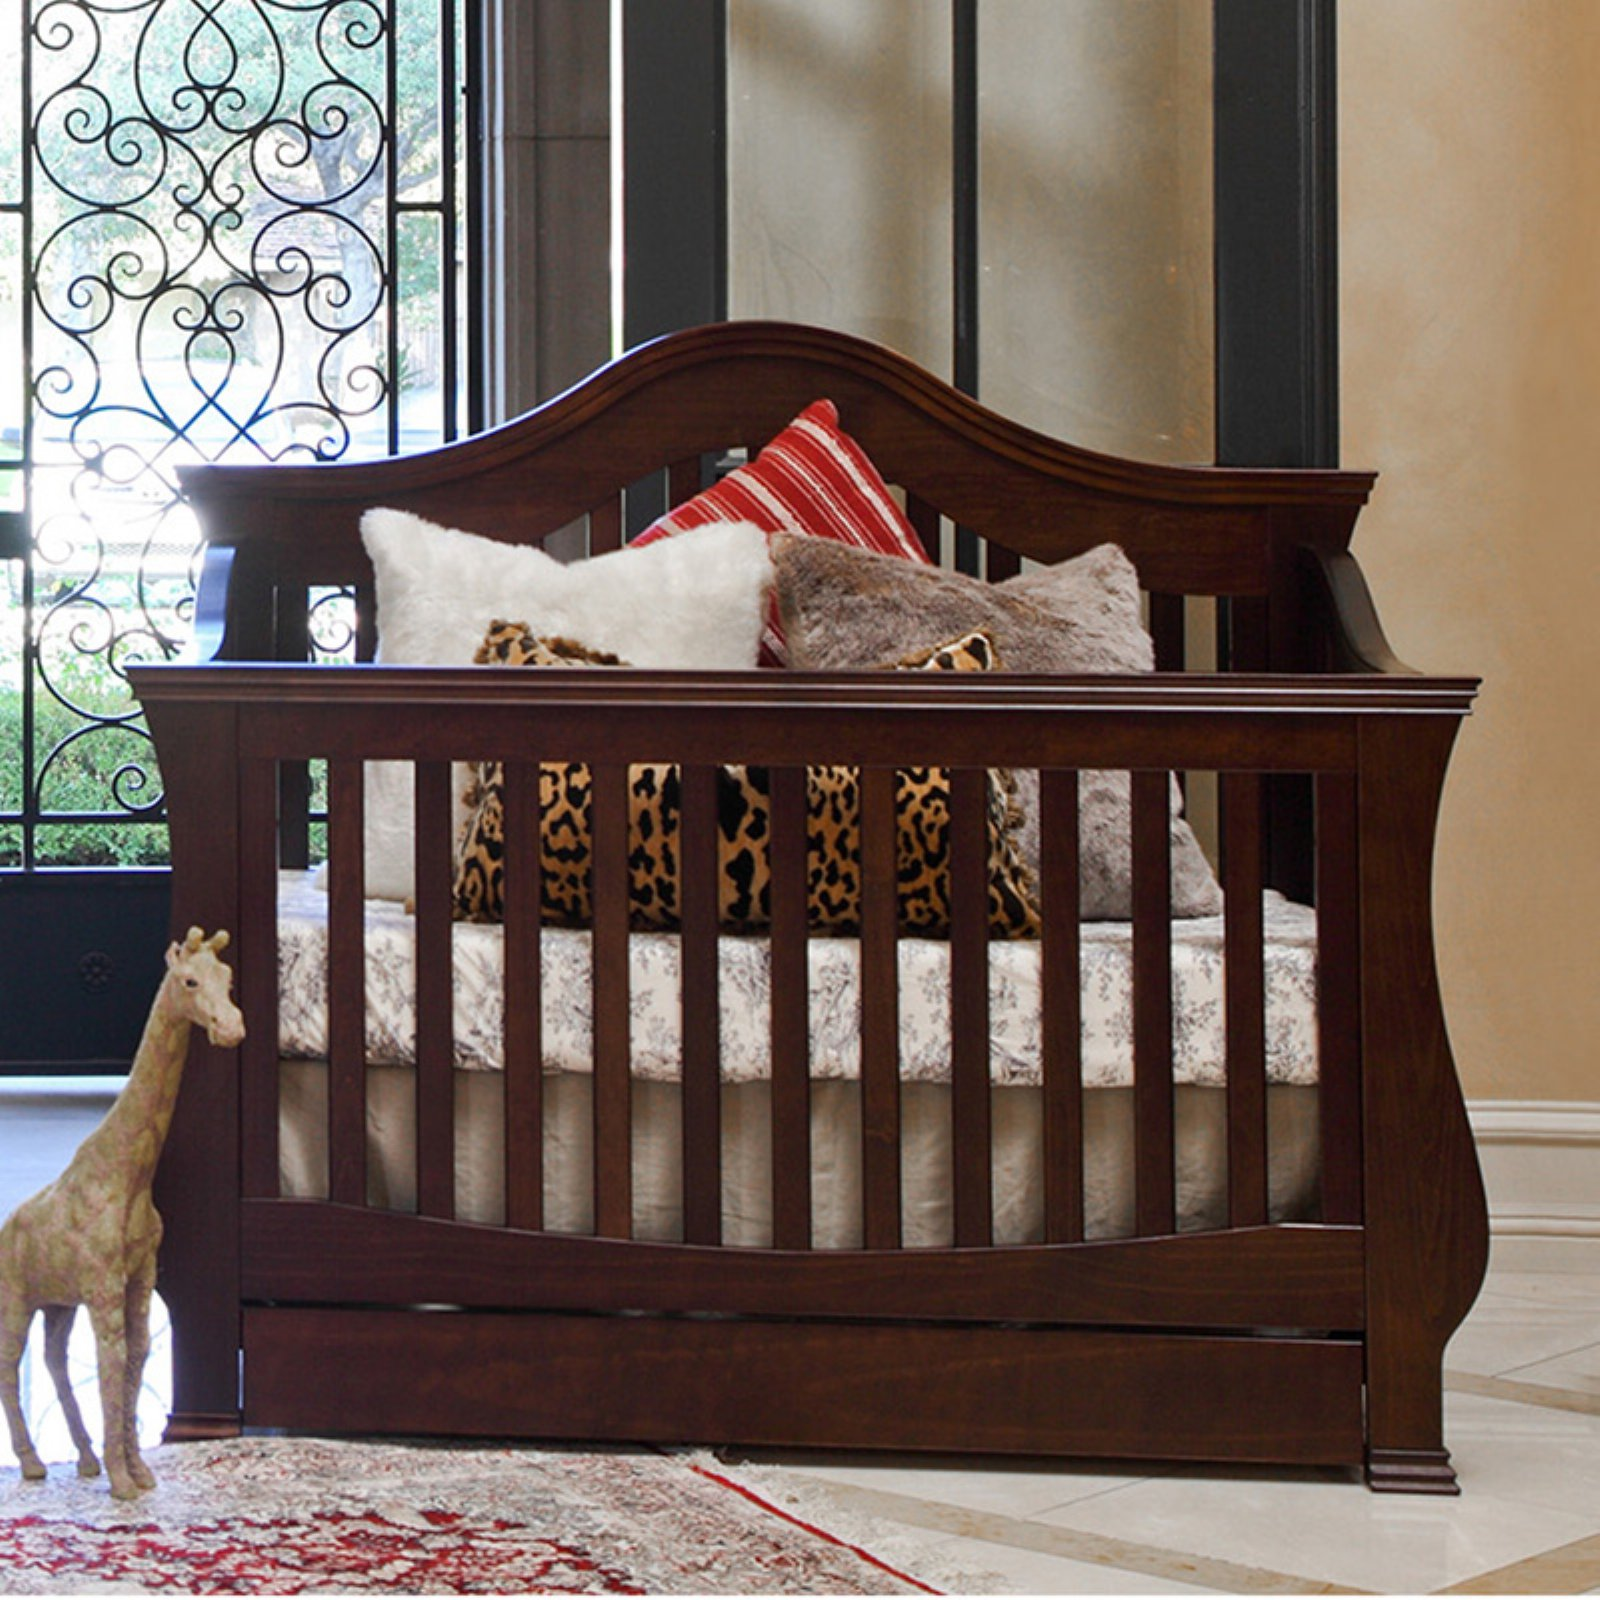 Million Dollar Baby Ashbury 4-in-1 Convertible Crib with Toddler Rail